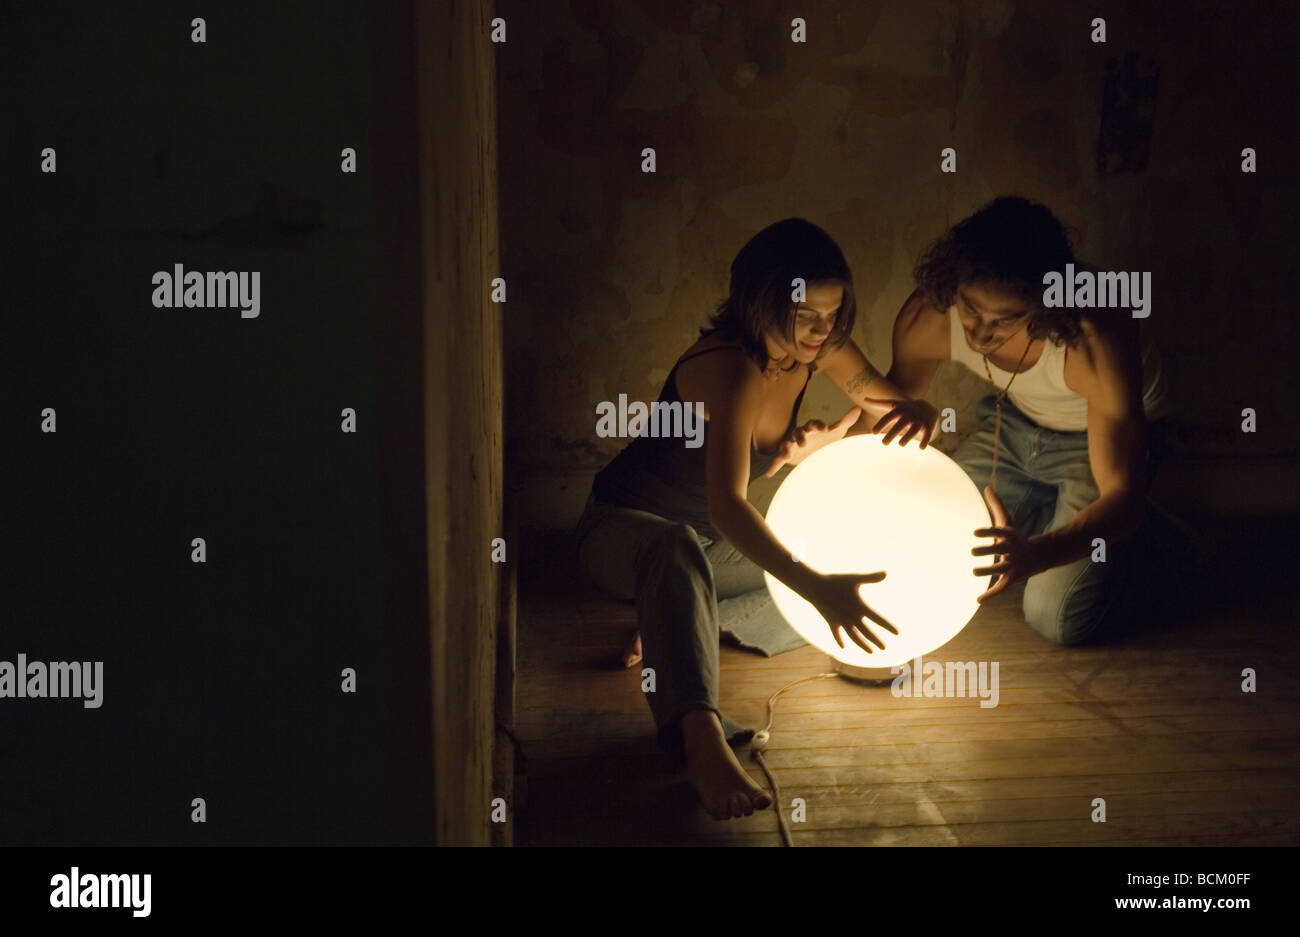 Woman and man touching glowing orb - Stock Image